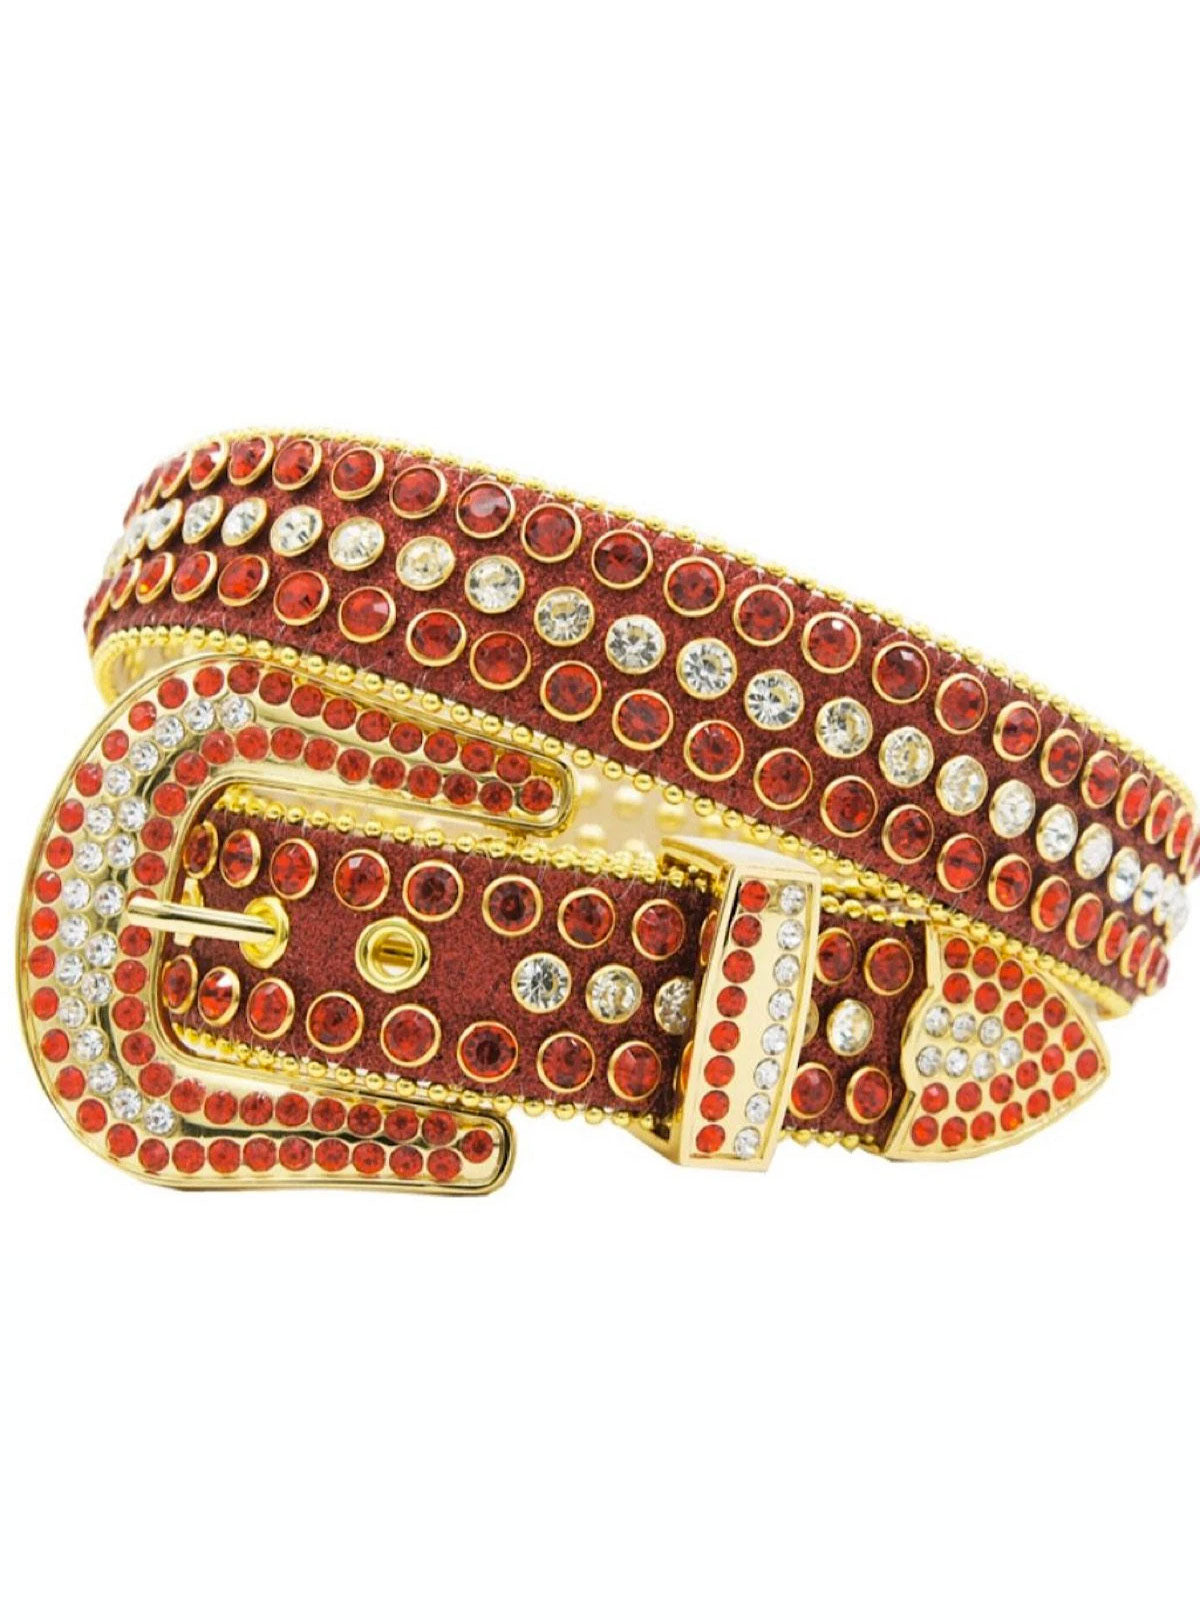 DNA Belt - Shiny Stones - Red And Gold